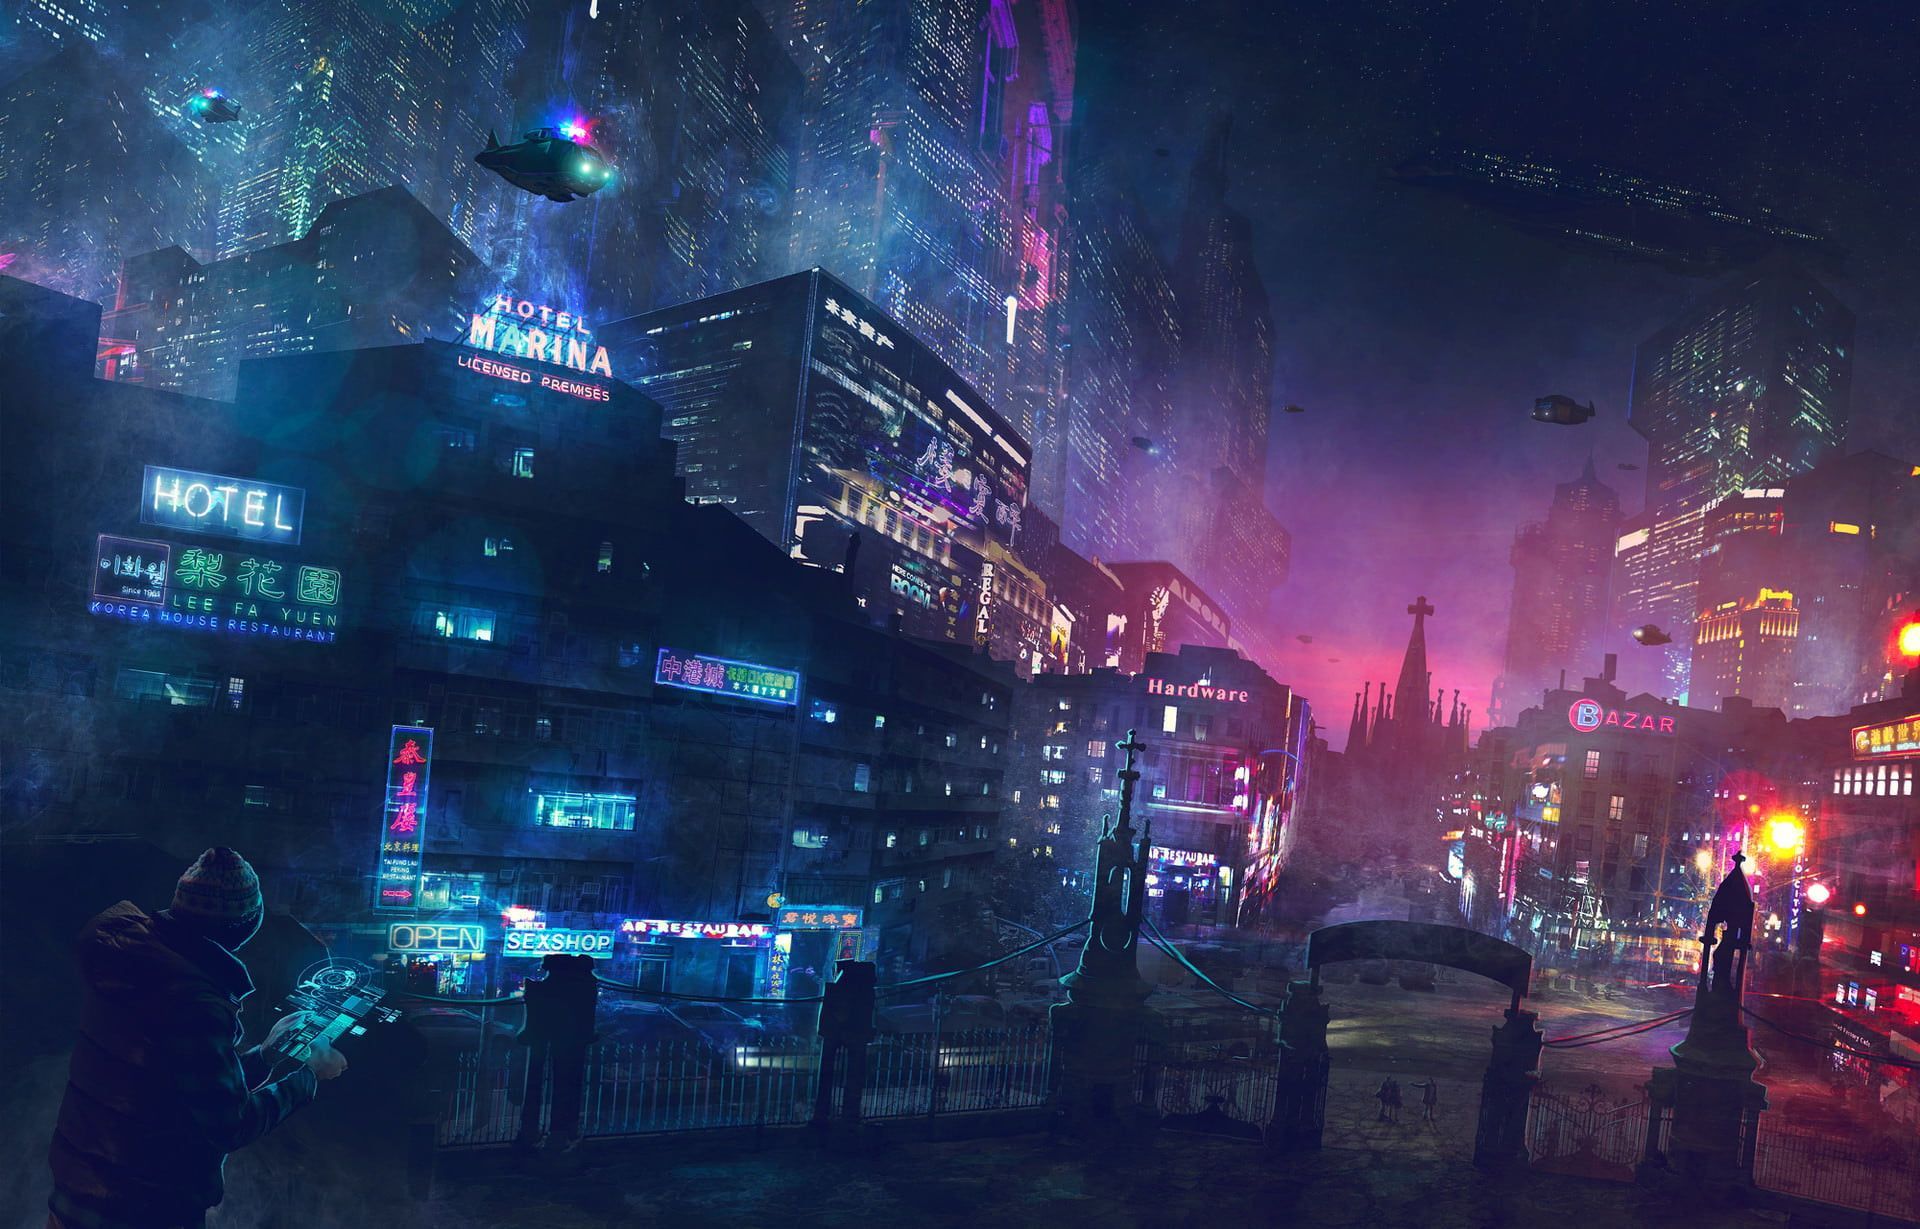 Futuristic Wallpaper City Science Fiction Cyberpunk Neon Hovercraft Cathedral Hotel Police 1080p Wallpaper Cyberpunk City Futuristic City Sci Fi City